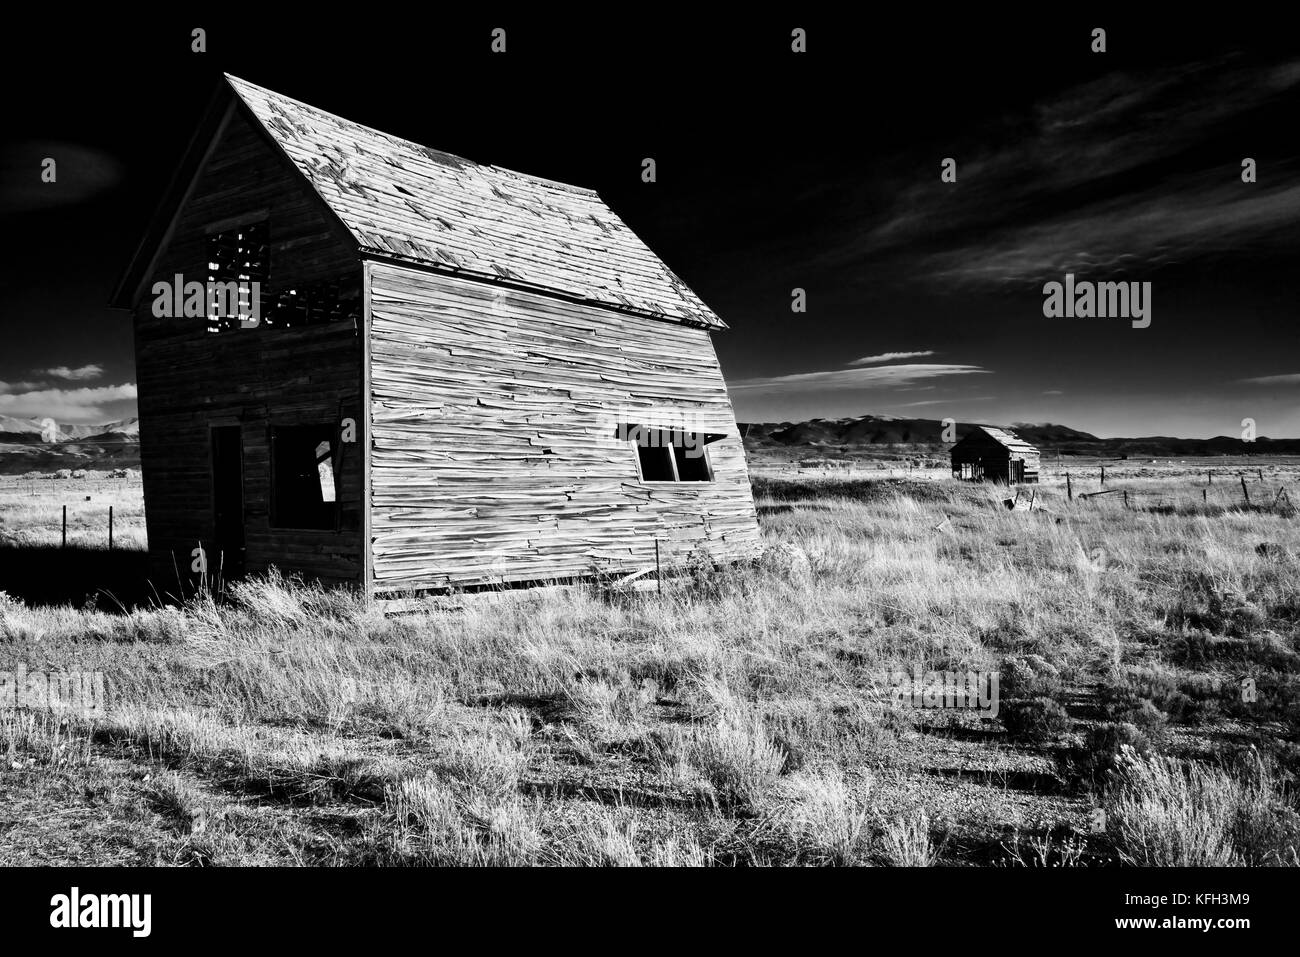 A stark scene of dilapidated old barns twisted in the Colorado wind. - Stock Image